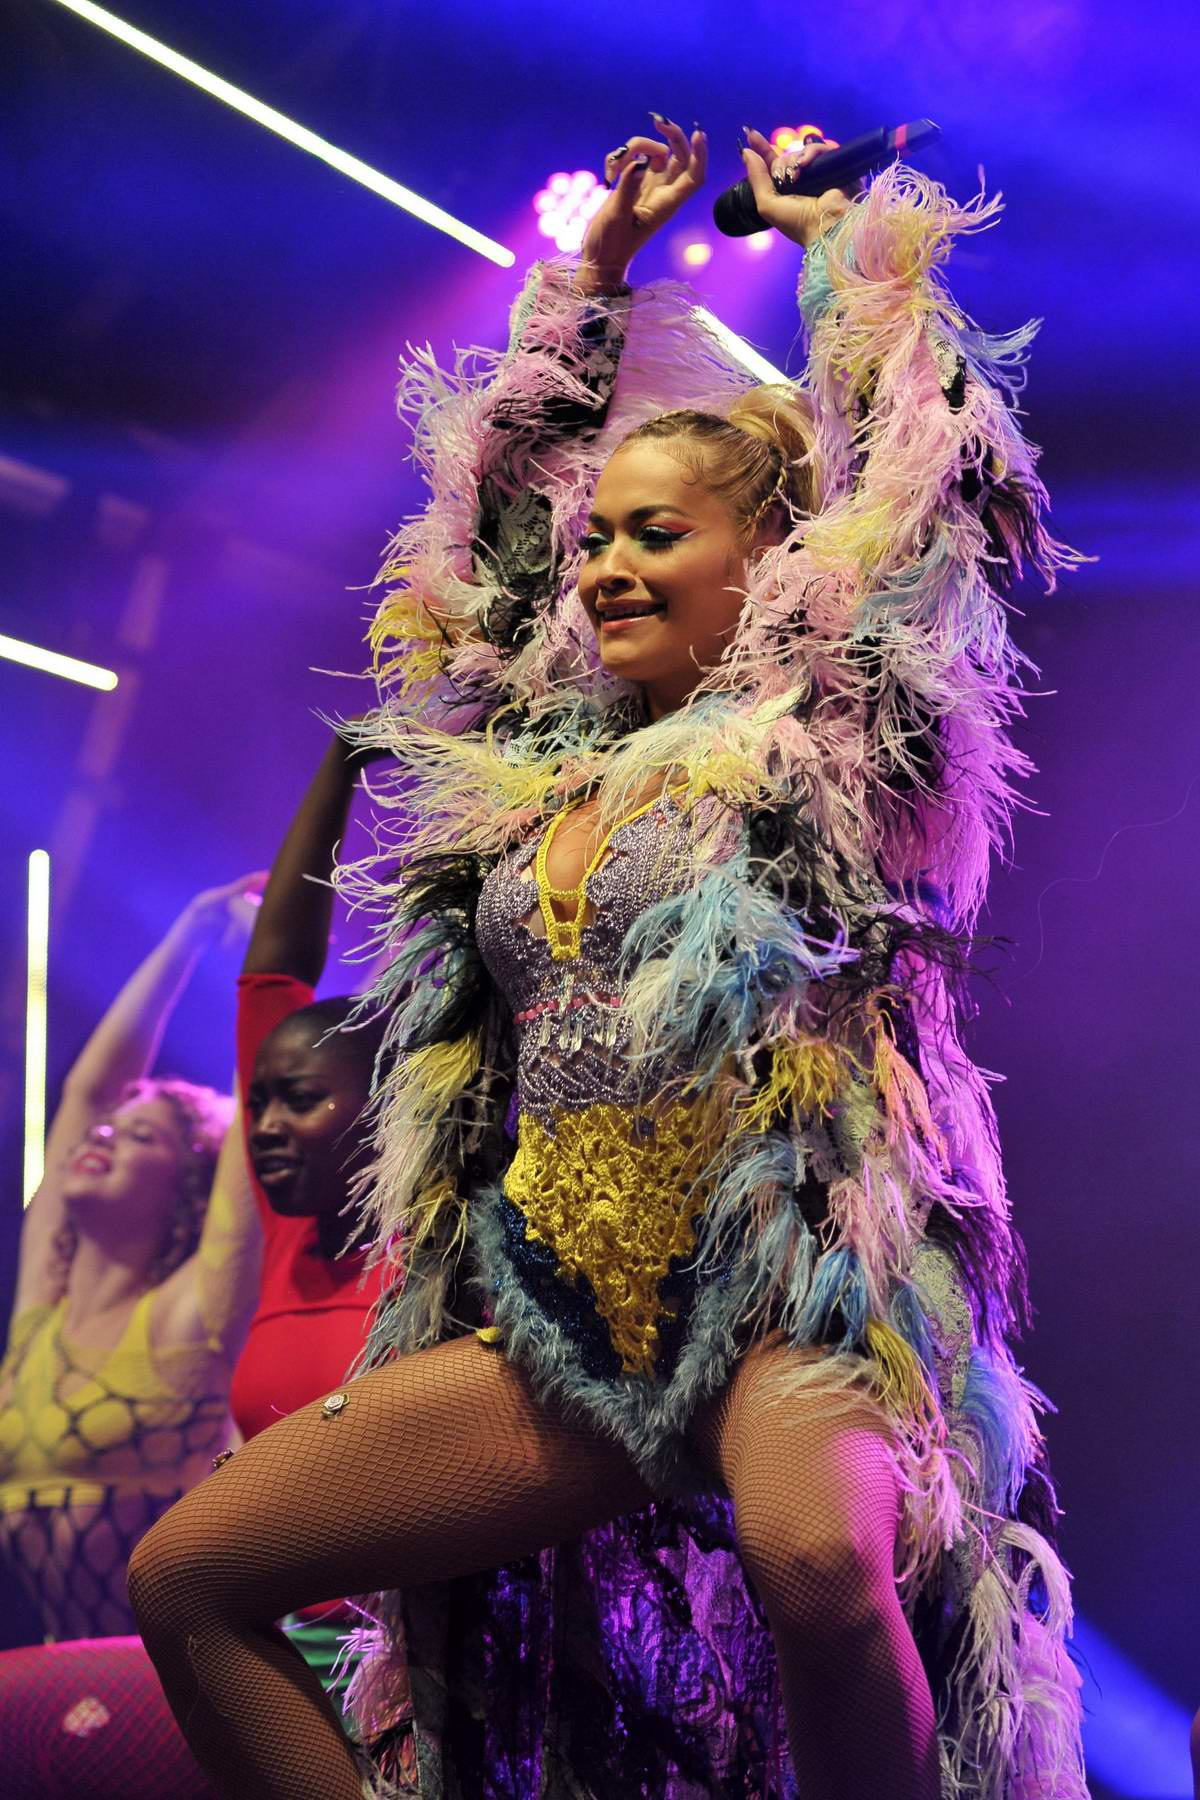 Rita Ora performs live onstage during 2018 Manchester Pride Parade in Manchester,UK